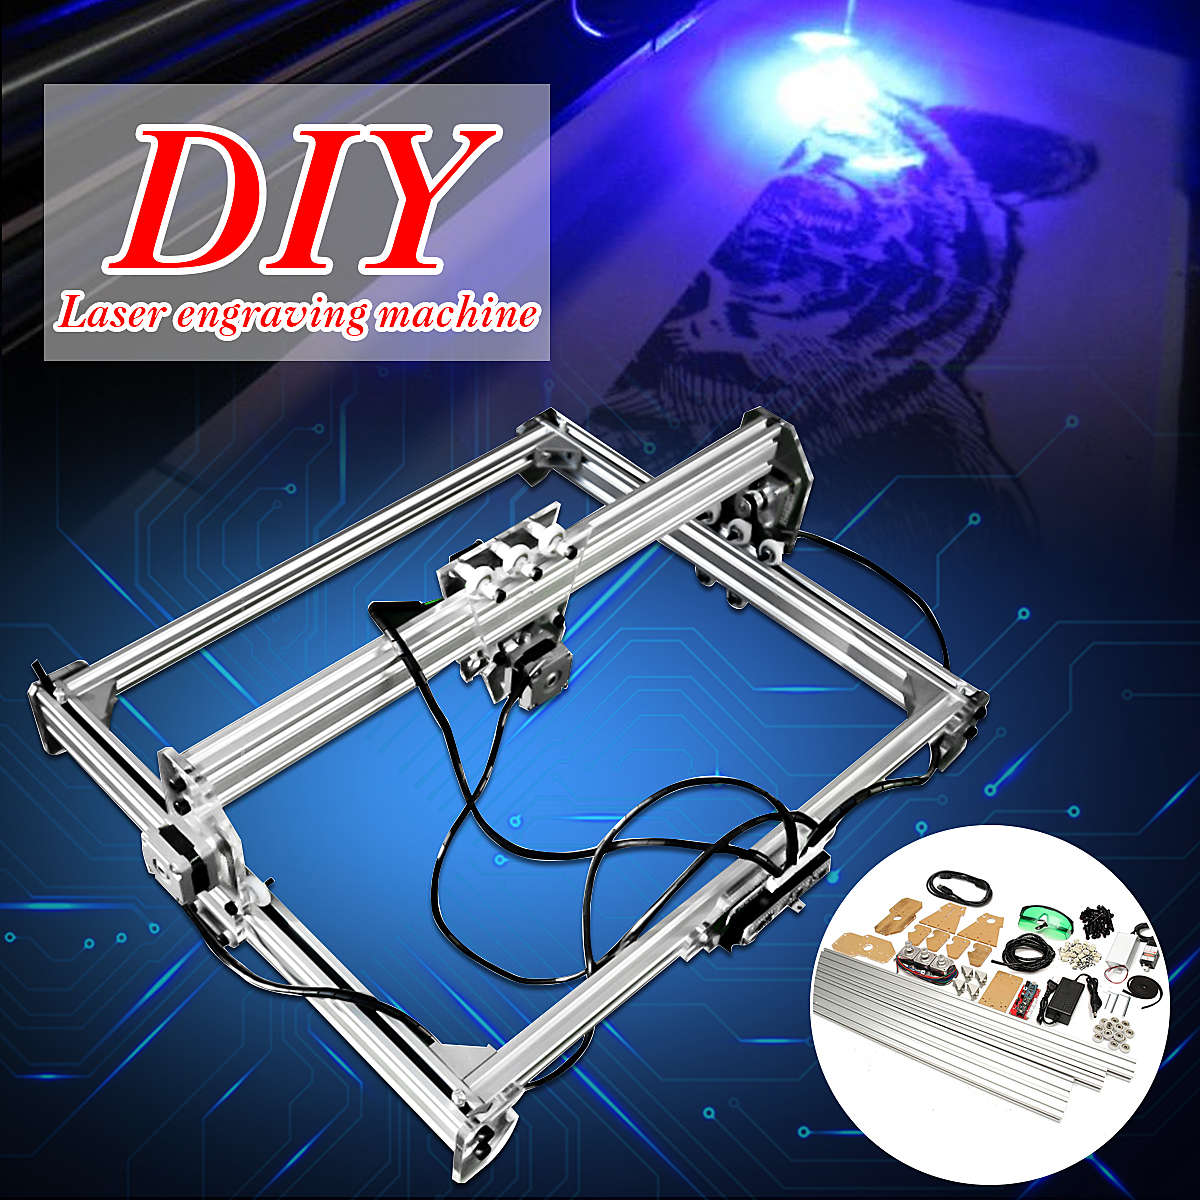 50 65cm Mini 3000MW Blue CNC Laser Engraving Machine 2Axis DC 12V DIY Engraver Desktop Wood Router Cutter Printer  Laser